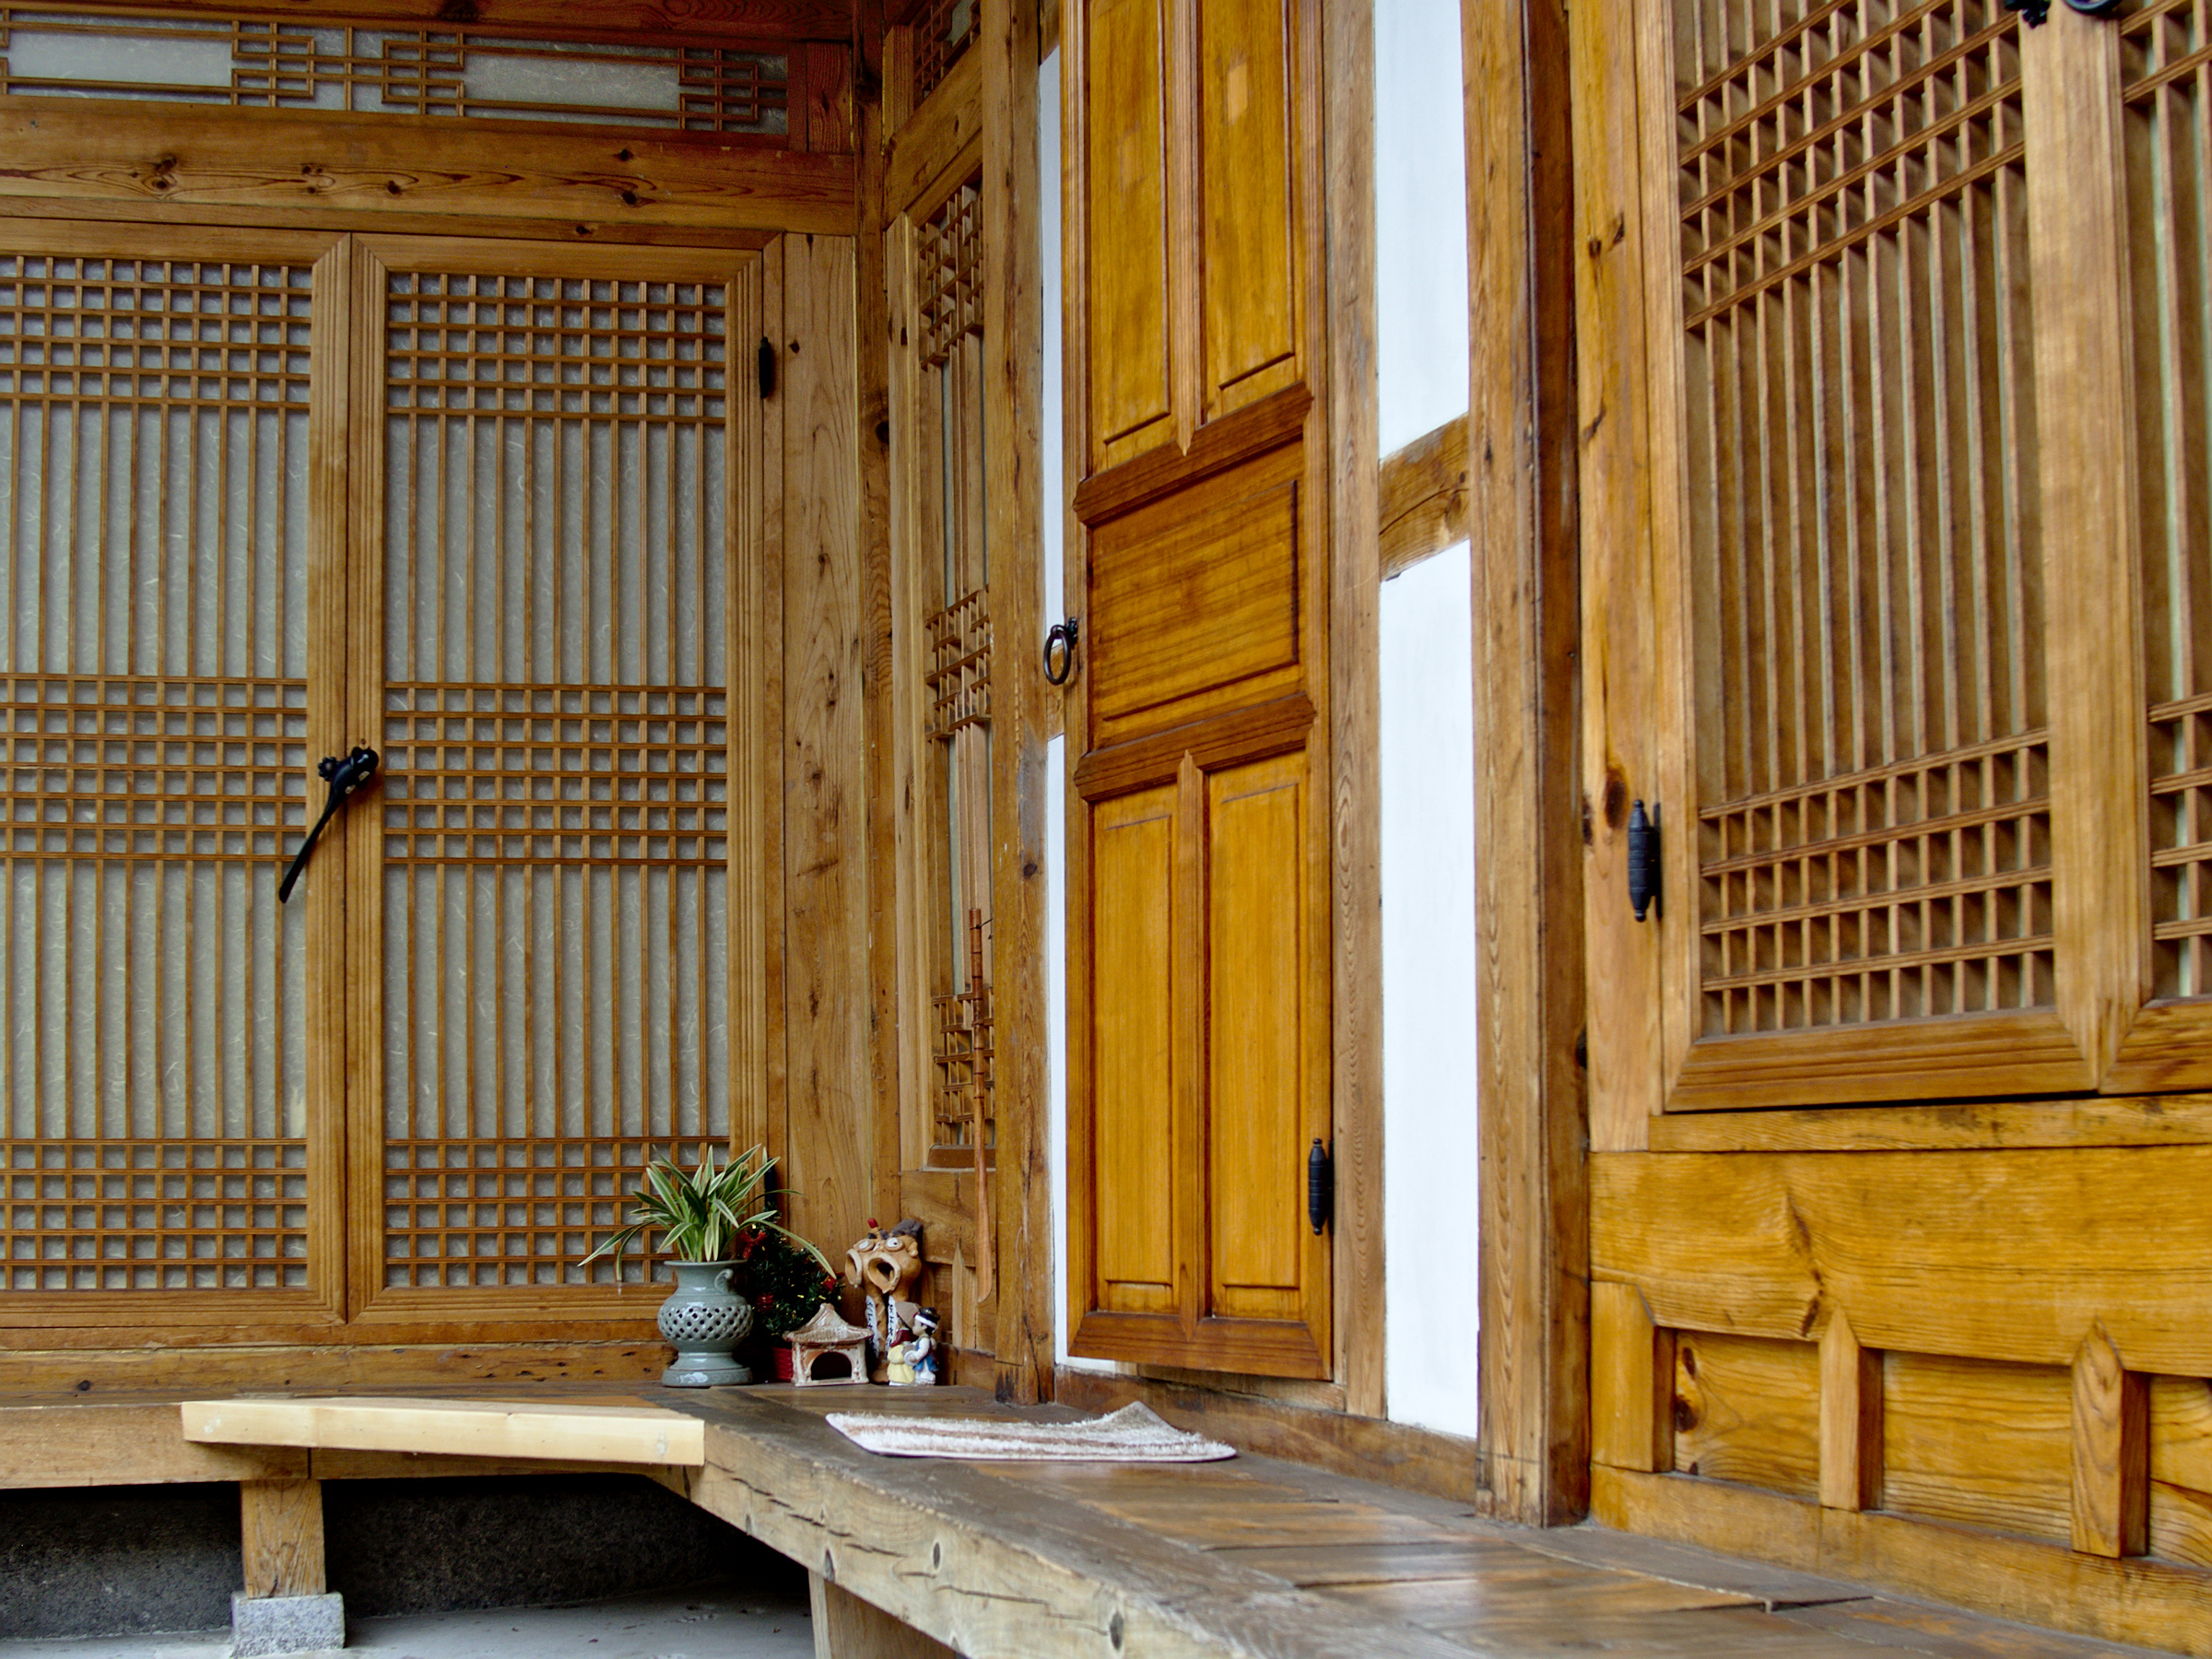 Sleeping in a traditional korean house perelincolors for Traditional korean kitchen